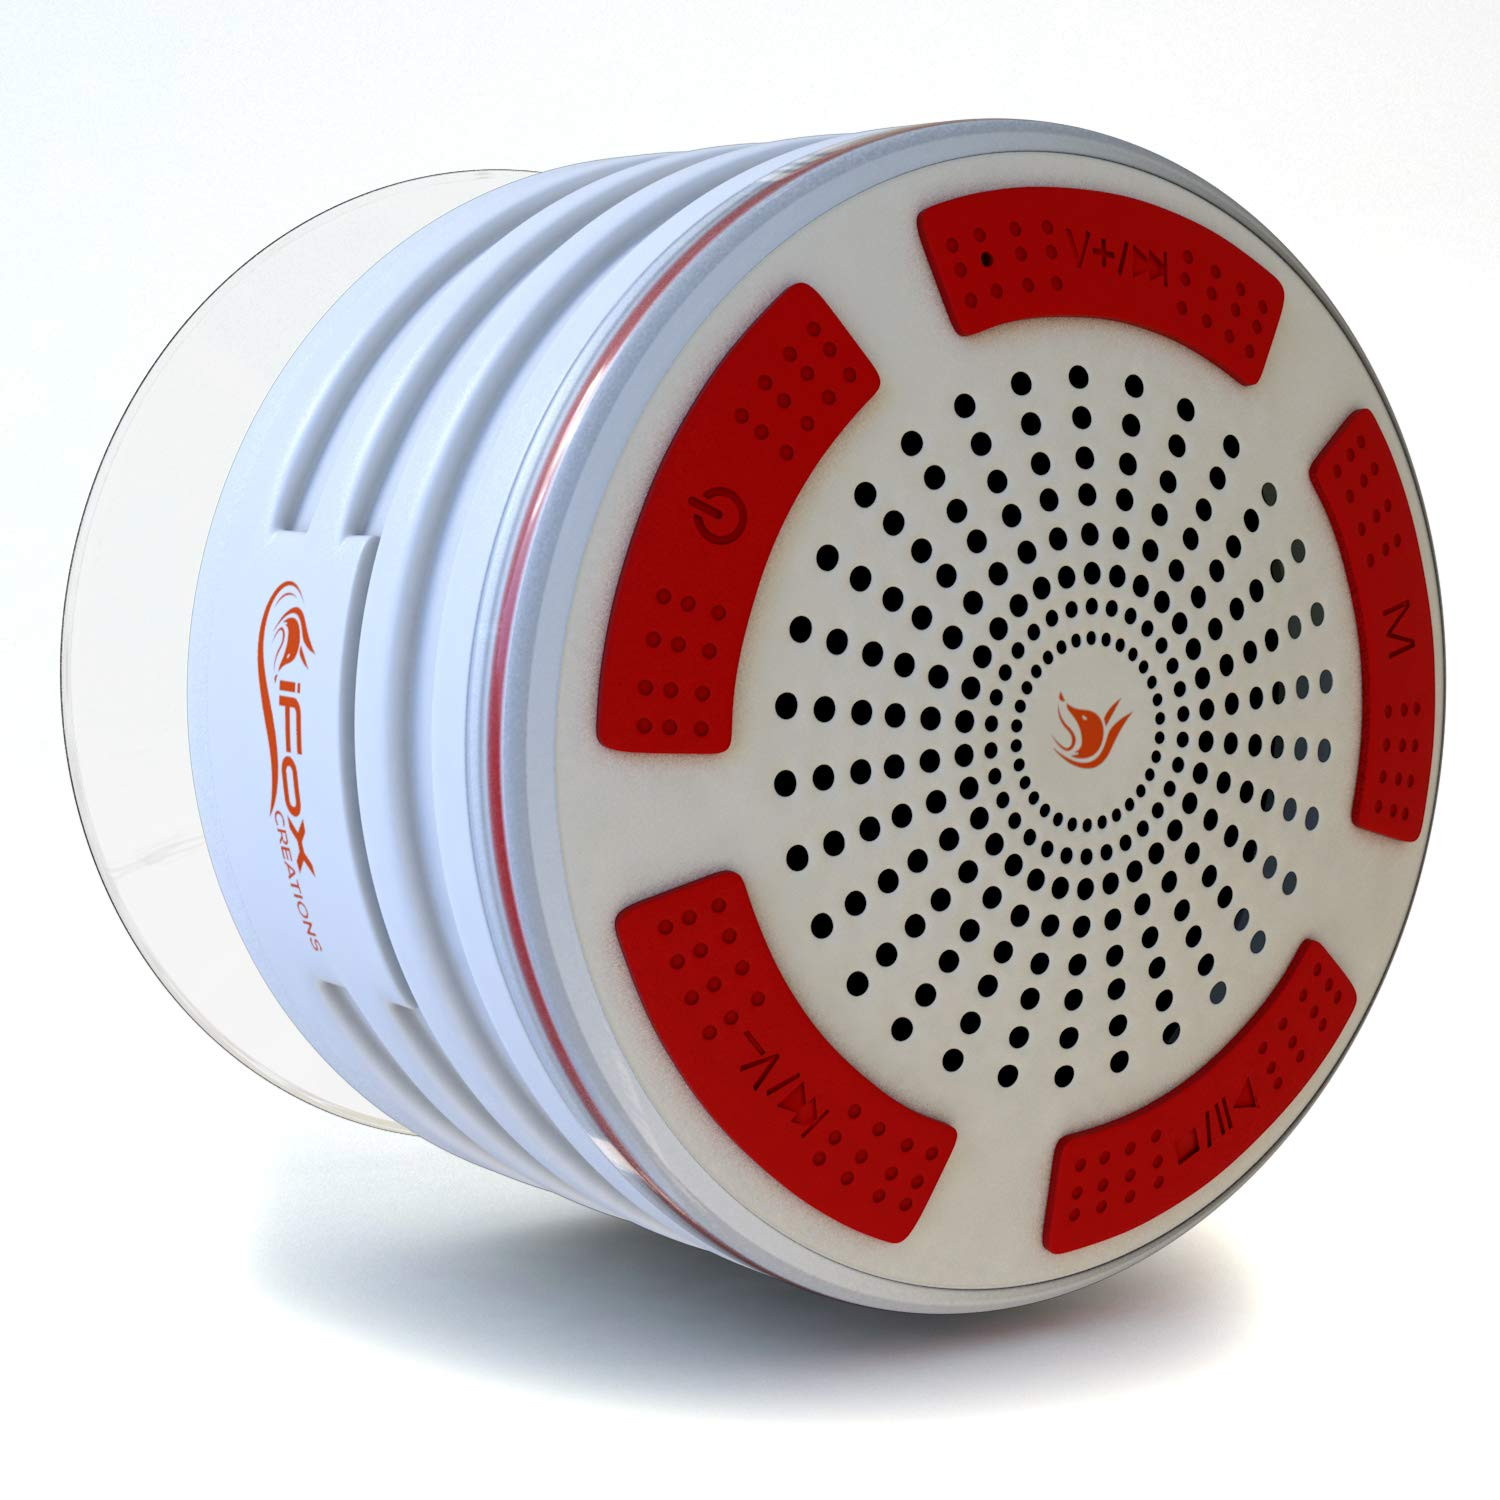 ifoxcreations iFox - iF013 Bluetooth Shower Speaker with FM Radio - Certified Waterproof and Wireless Pairing to All Bluetooth Devices for iPhone, iPad, iPod, PC - Black iFox Creations